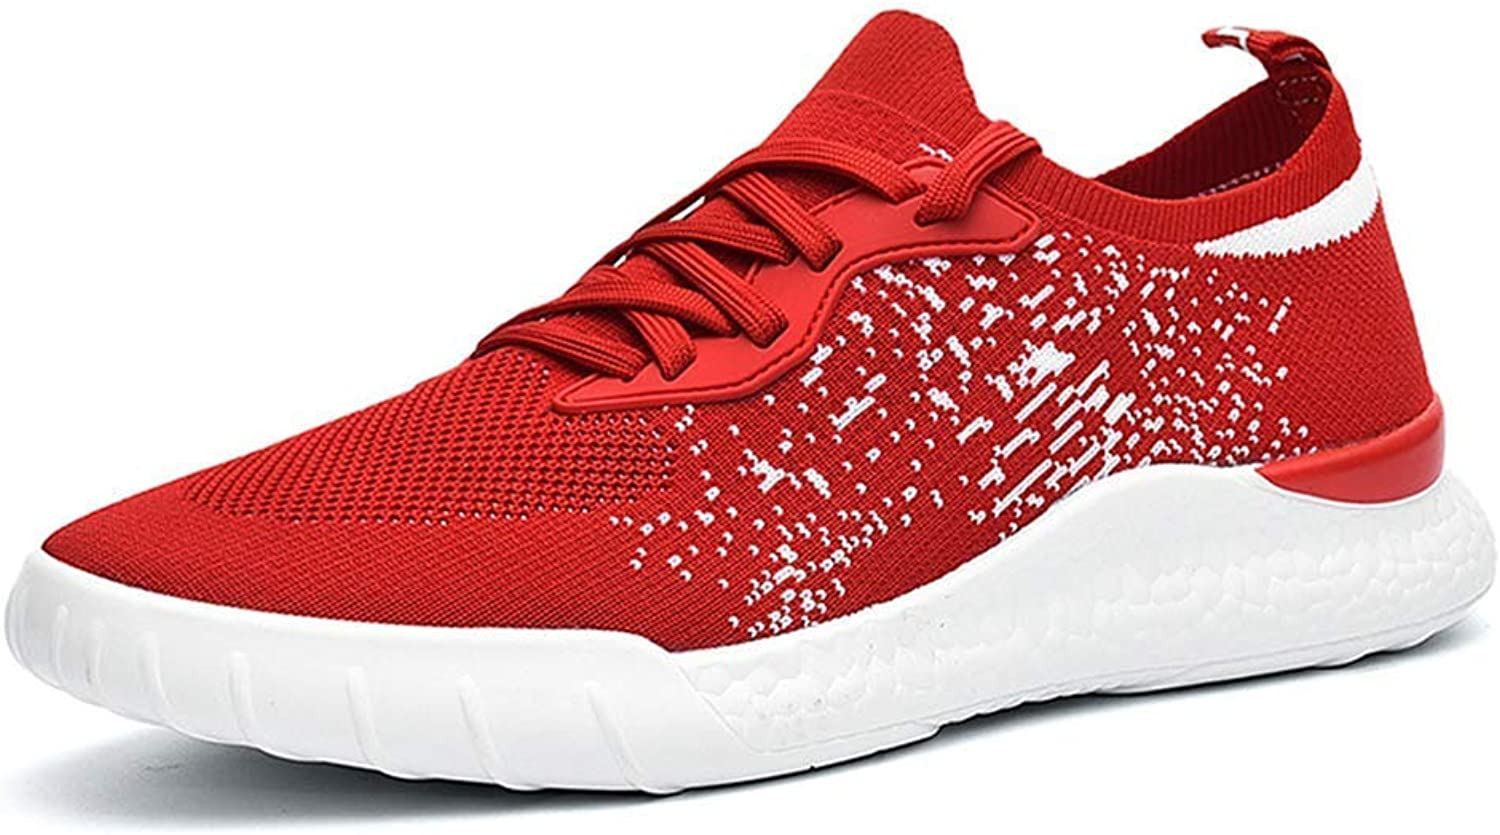 ZHRUI Men Sneakers Comfortable Breathable Lace up Mesh Casual shoes (color   Red B, Size   9UK=44 EU)